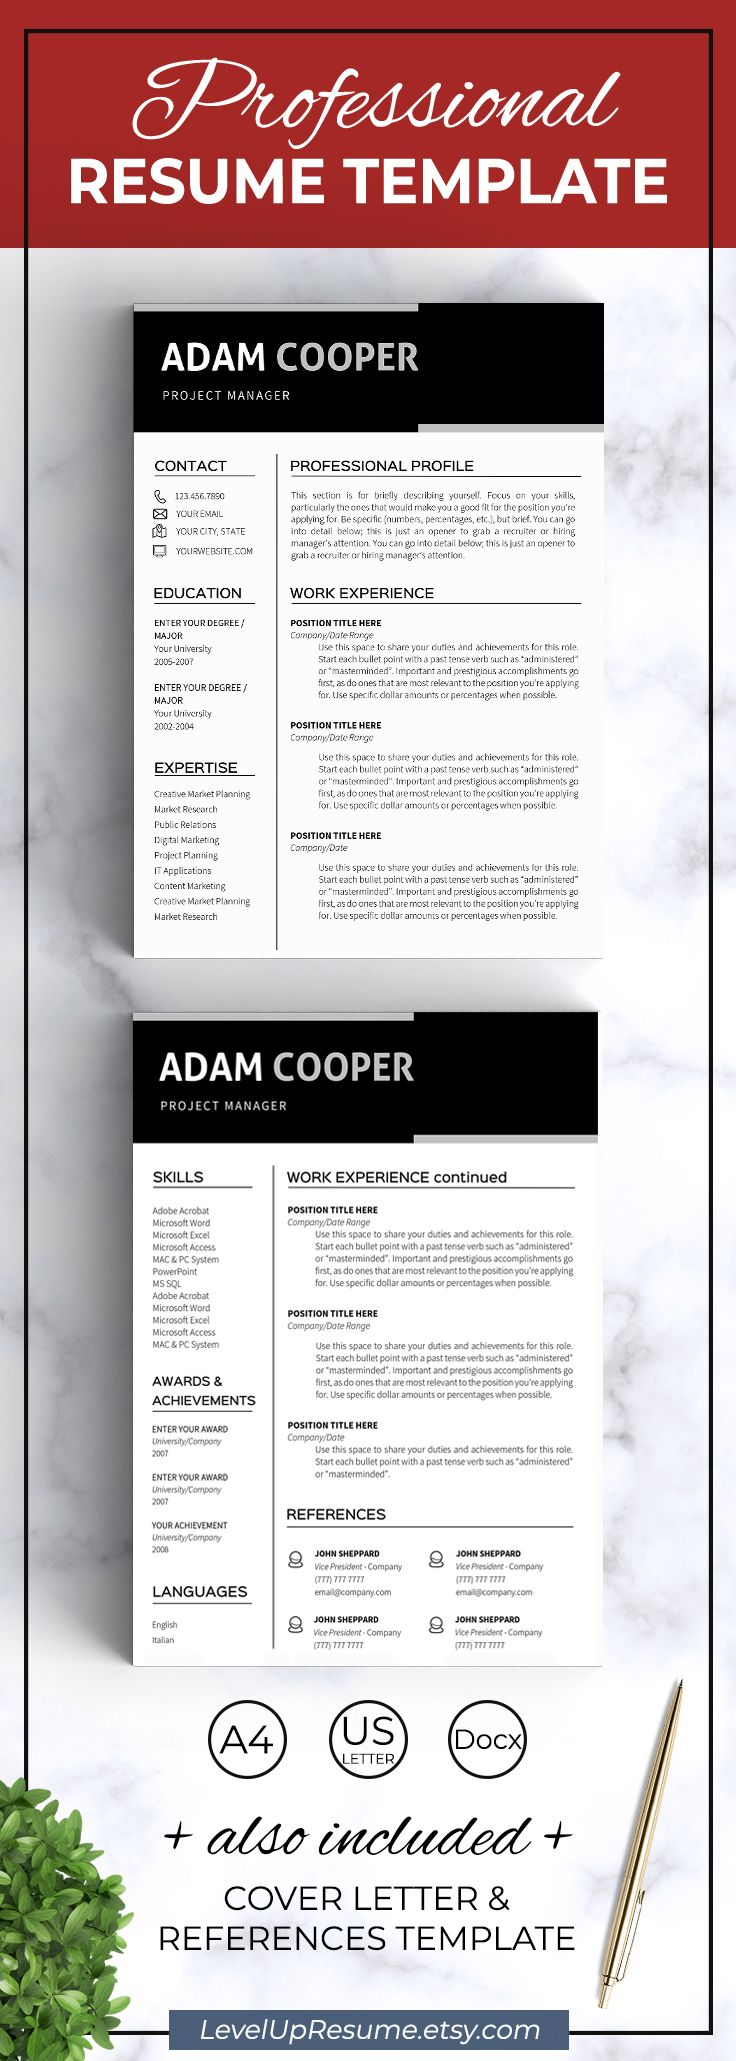 Word Cv Templates 2007%0A Modern resume template  Professional resume design  Career advice  Job  search  Get hired  Click on the link or save the pin to your board  u   e u   e u   e u   e u   e   career